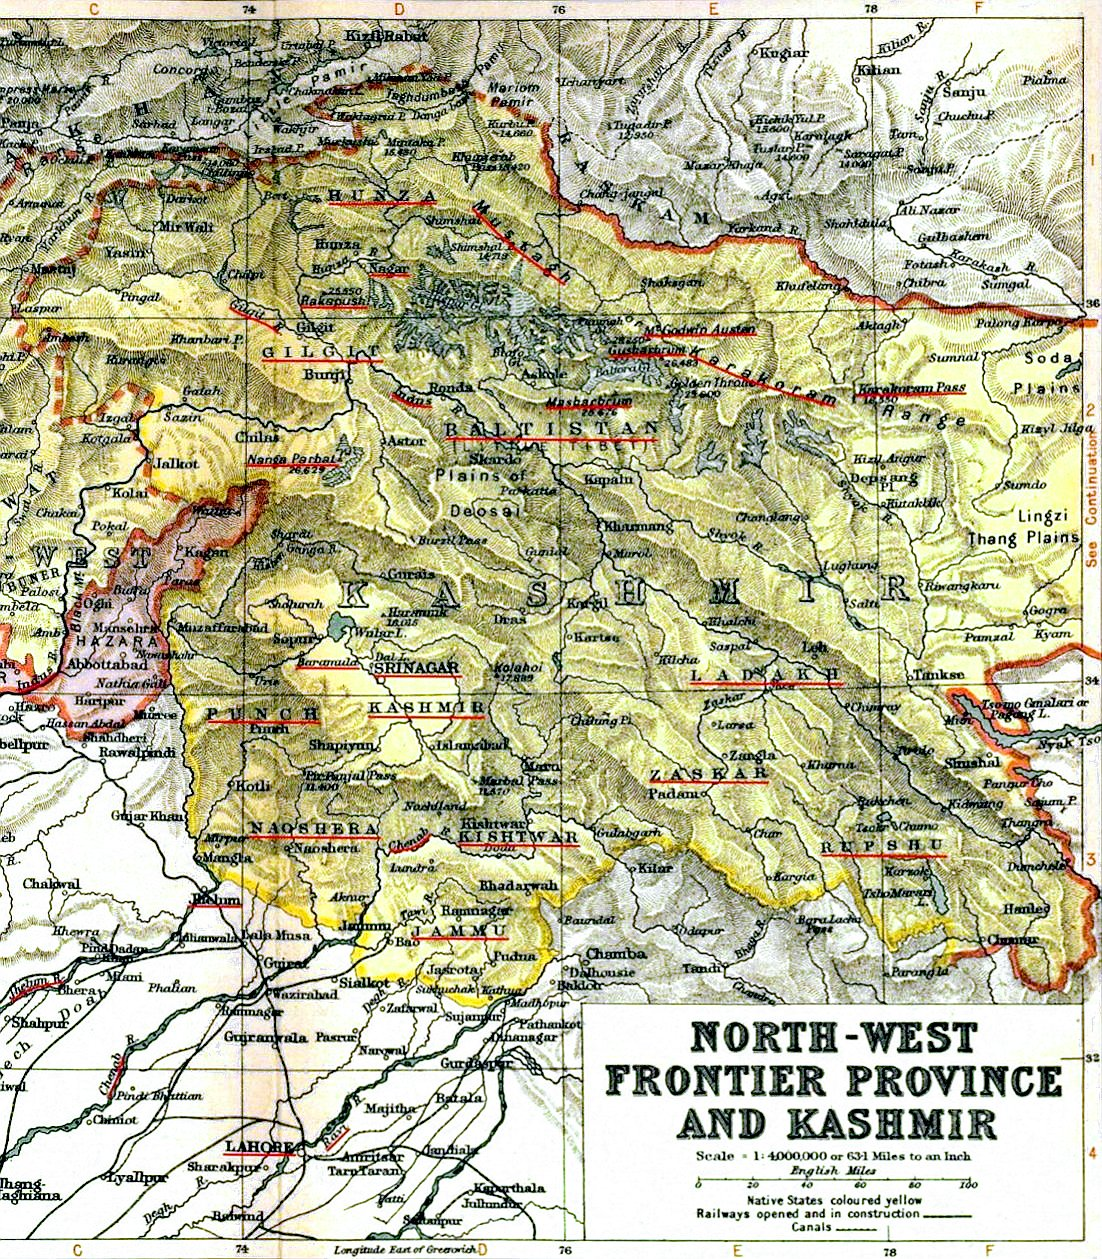 1909 Map of the Princely State of Kashmir and Jammu. The names of regions, important cities, rivers, and mountains are underlined in red.